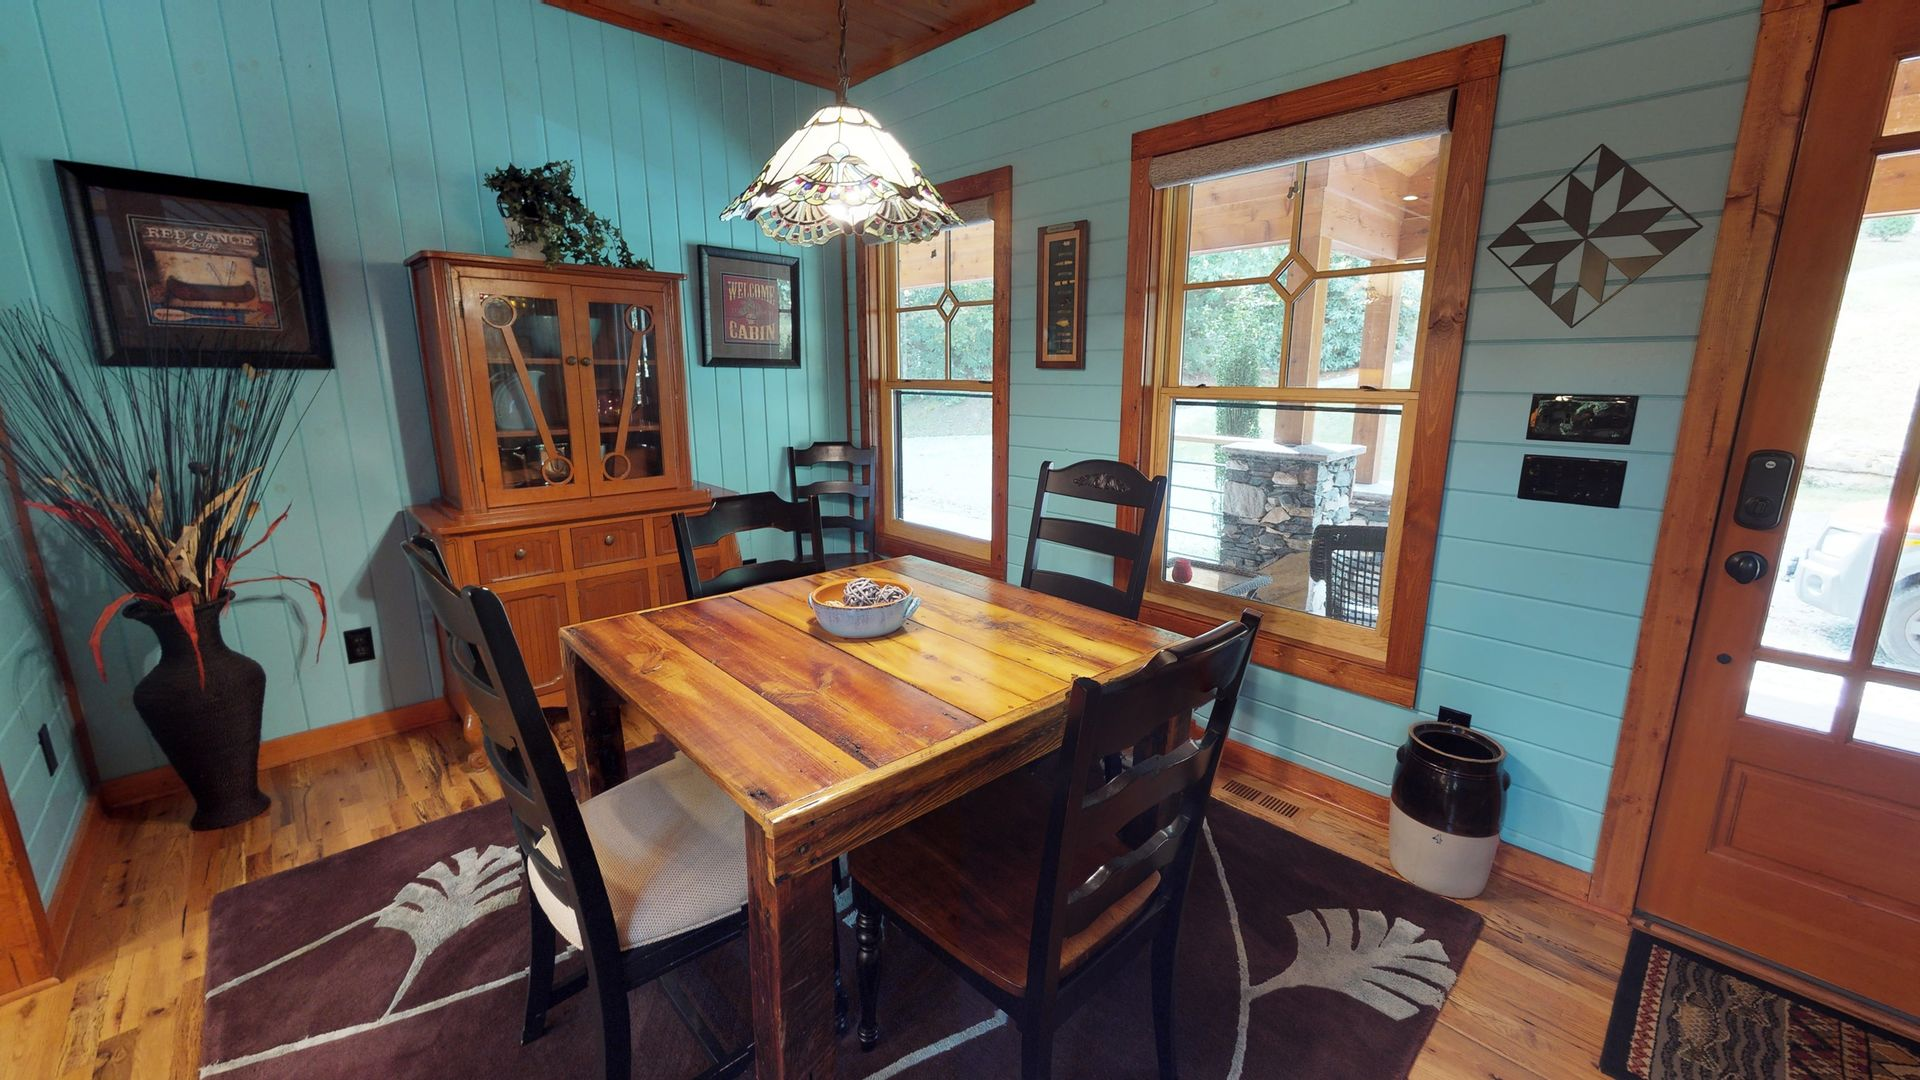 Breakfast nook with table for 4